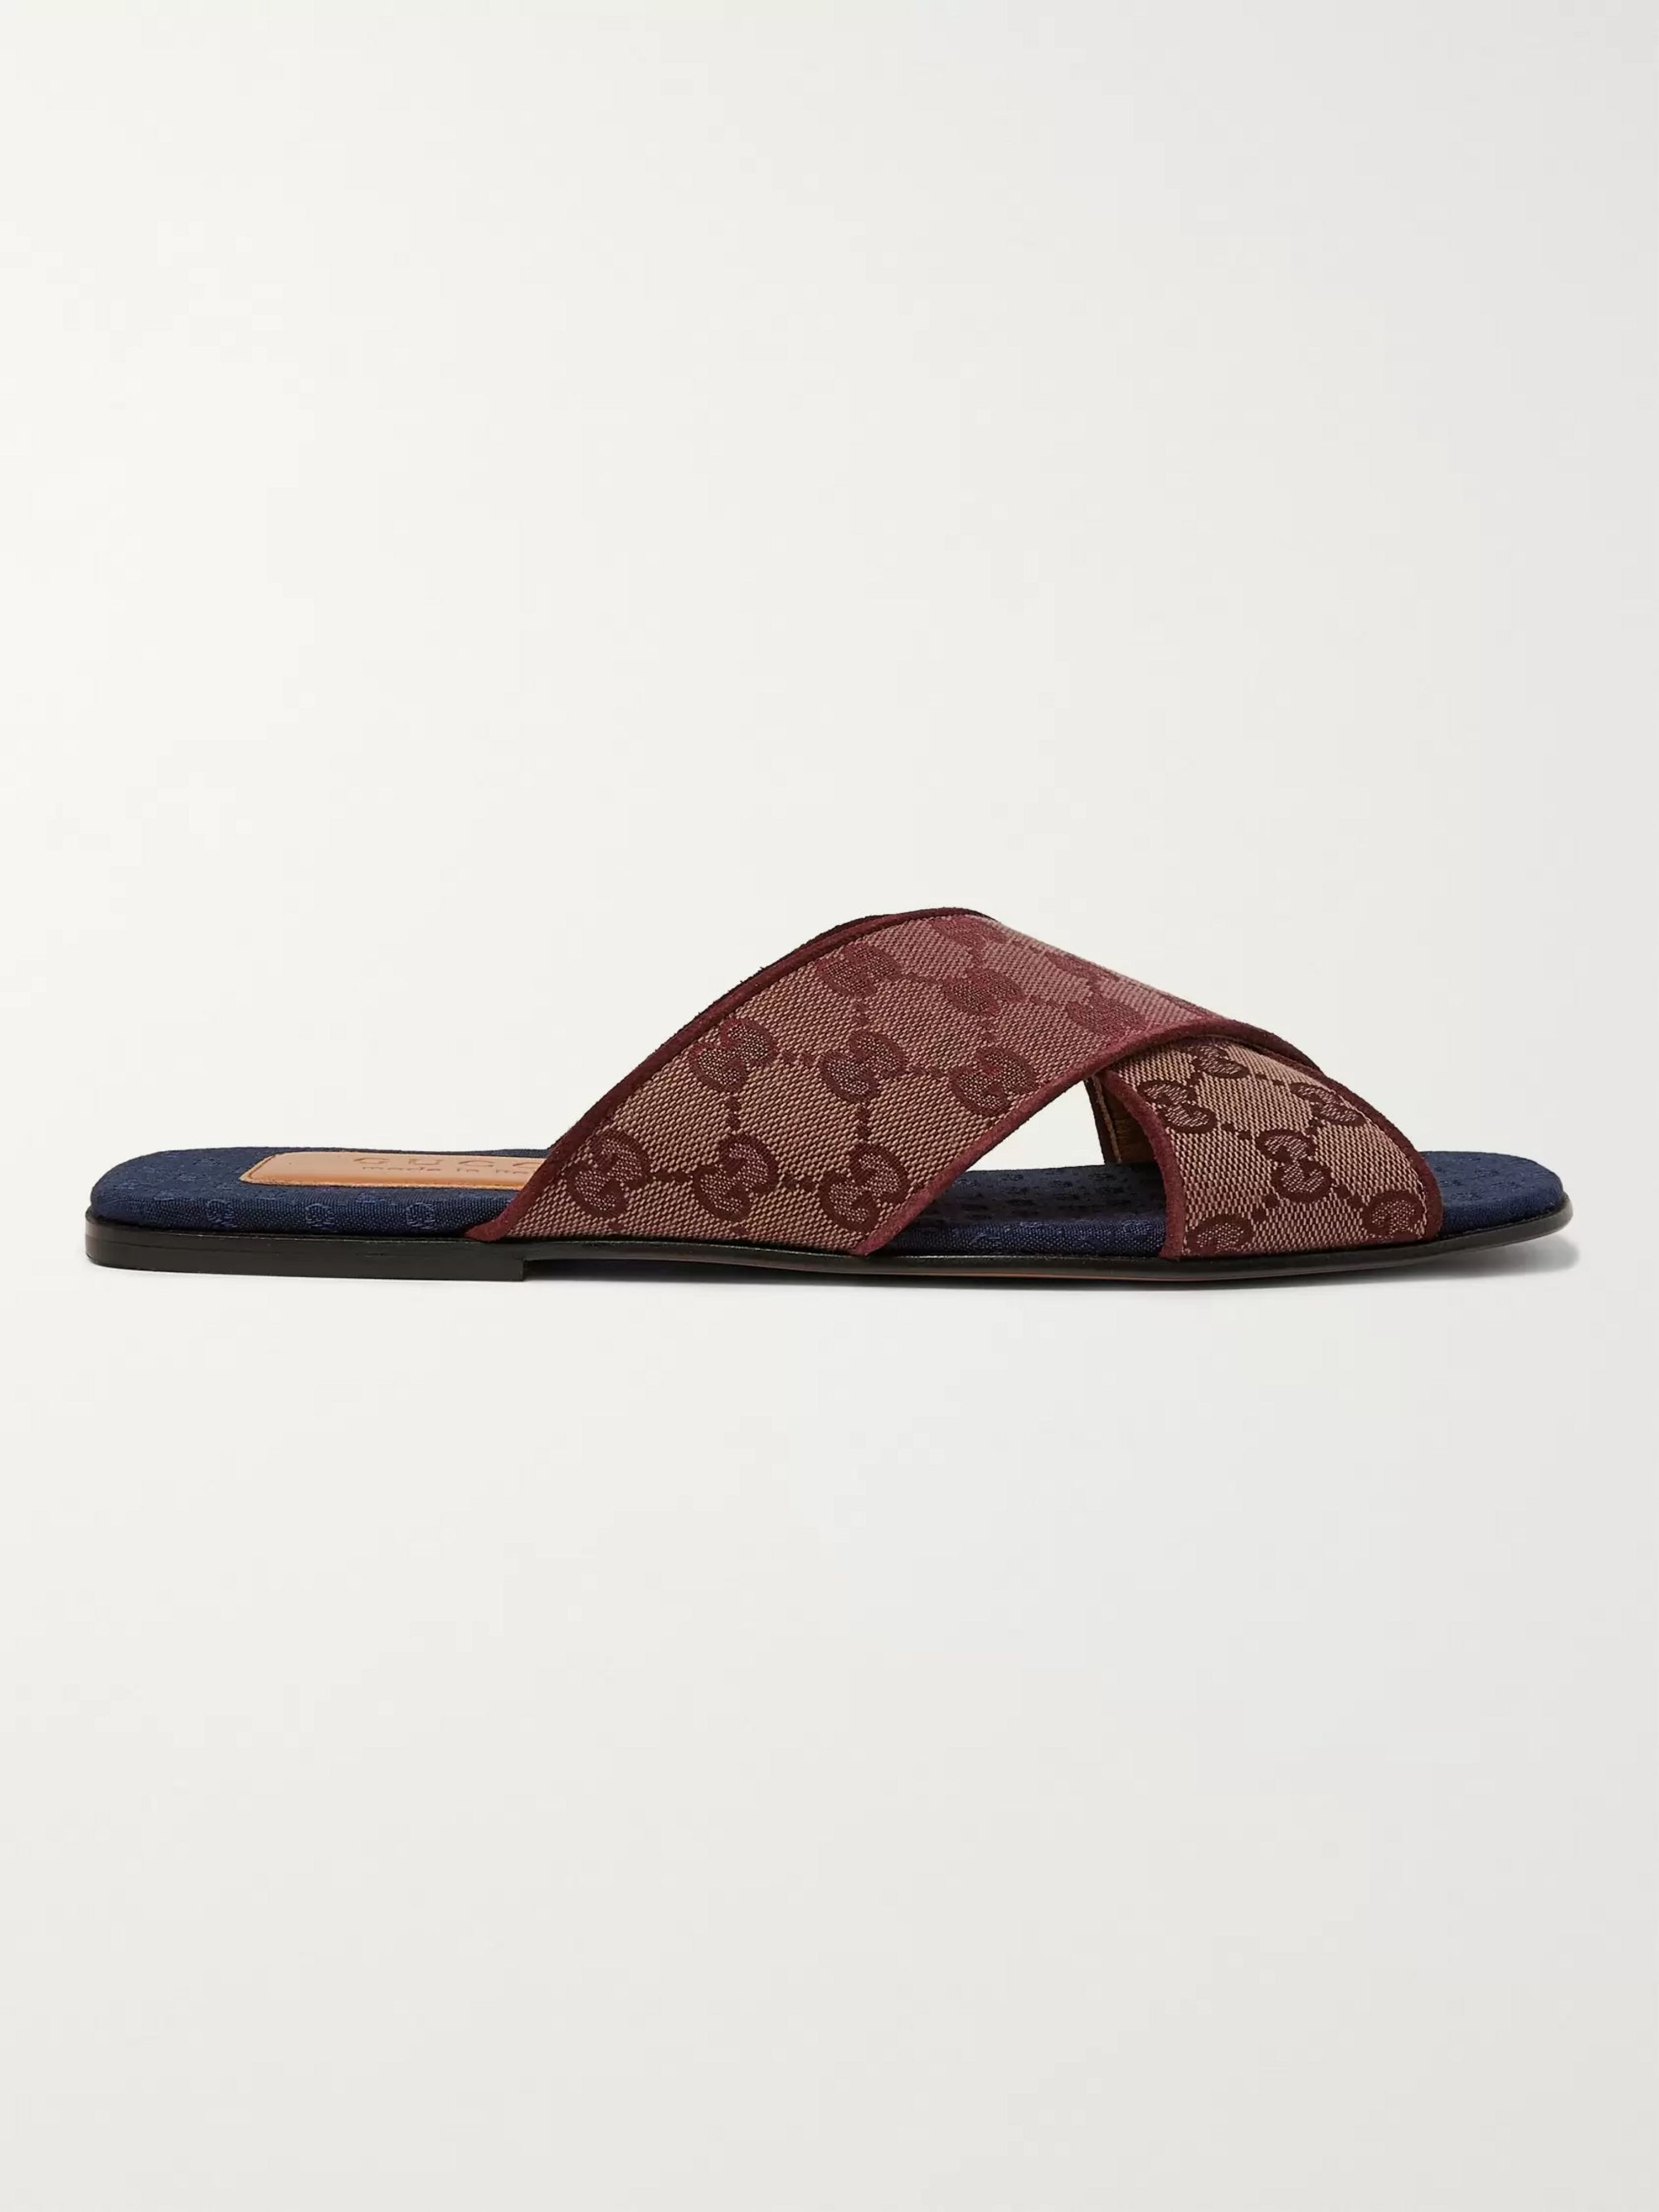 Gucci Suede-Trimmed Monogrammed Canvas Slides